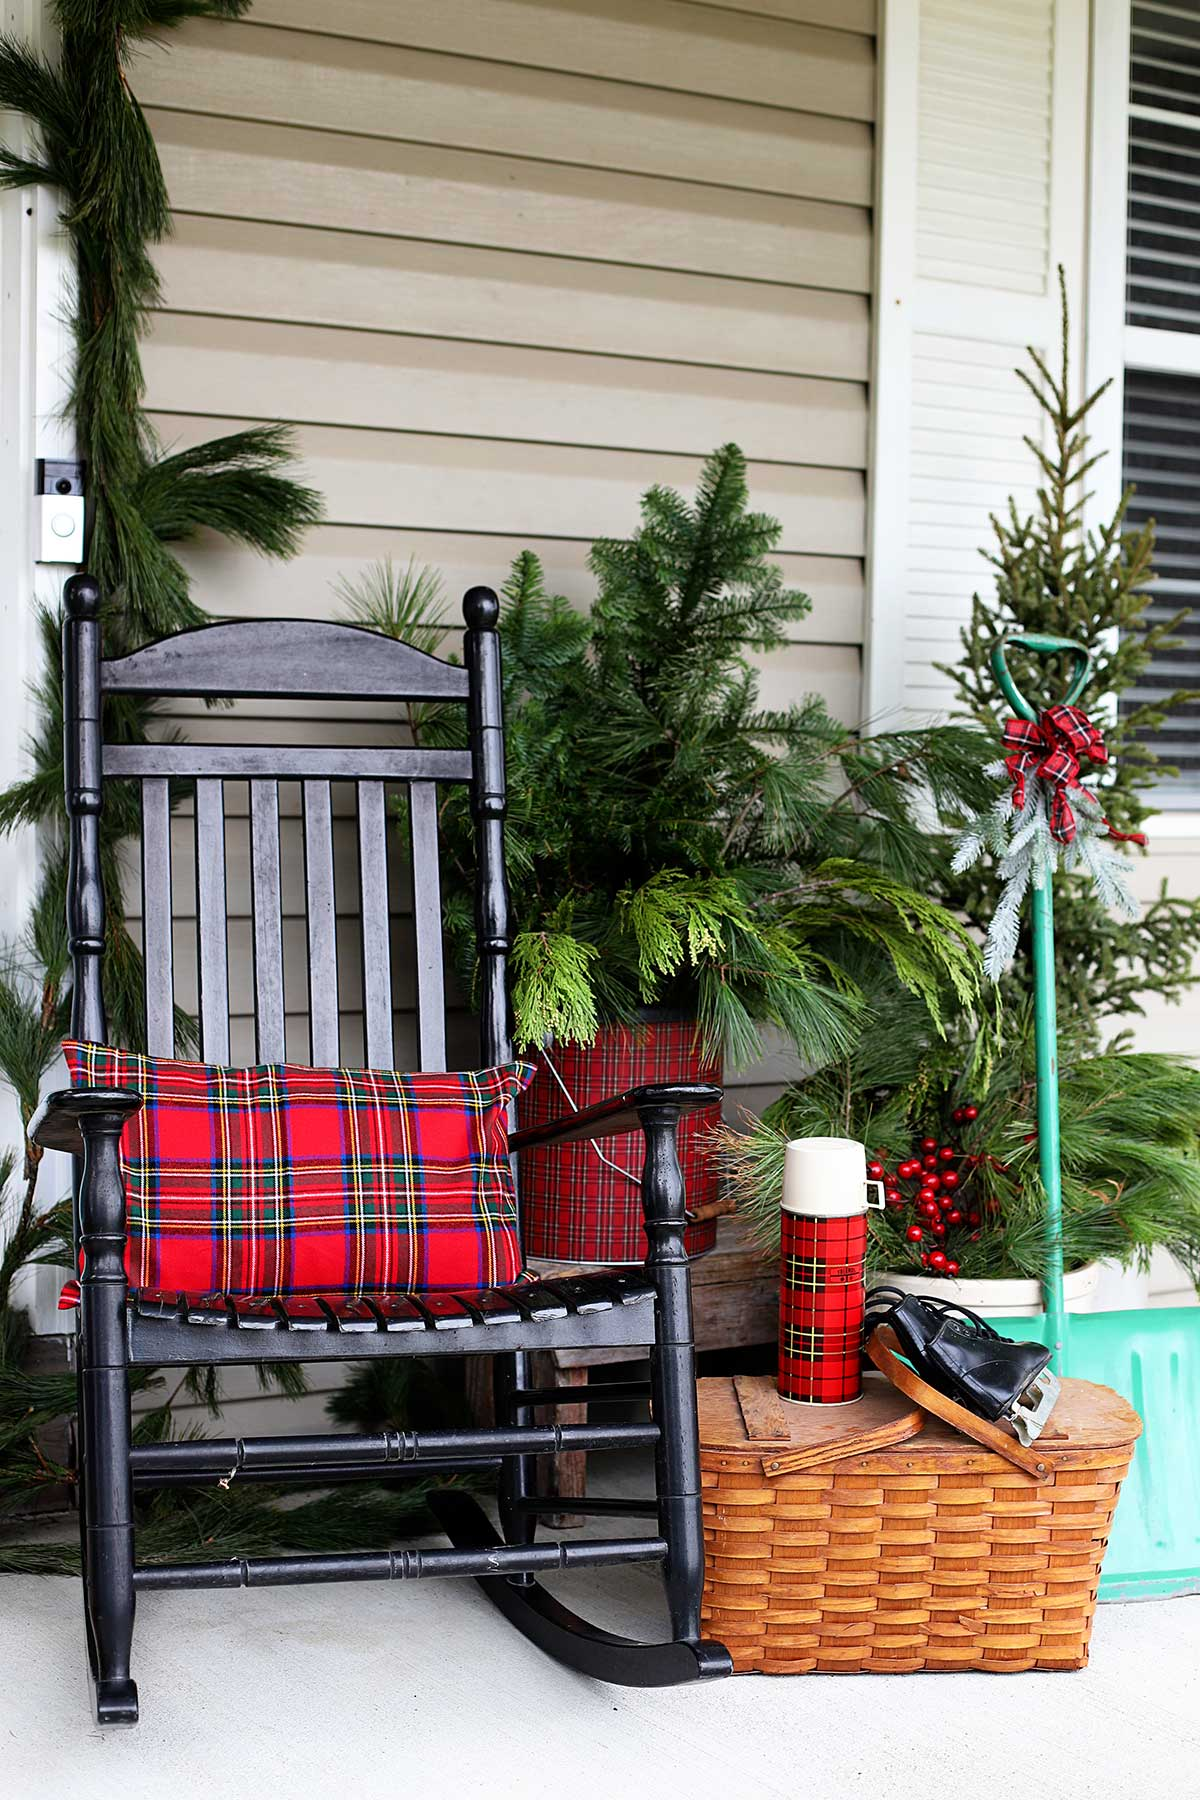 black porch rockers with plaid pillows for Christmas porch decor